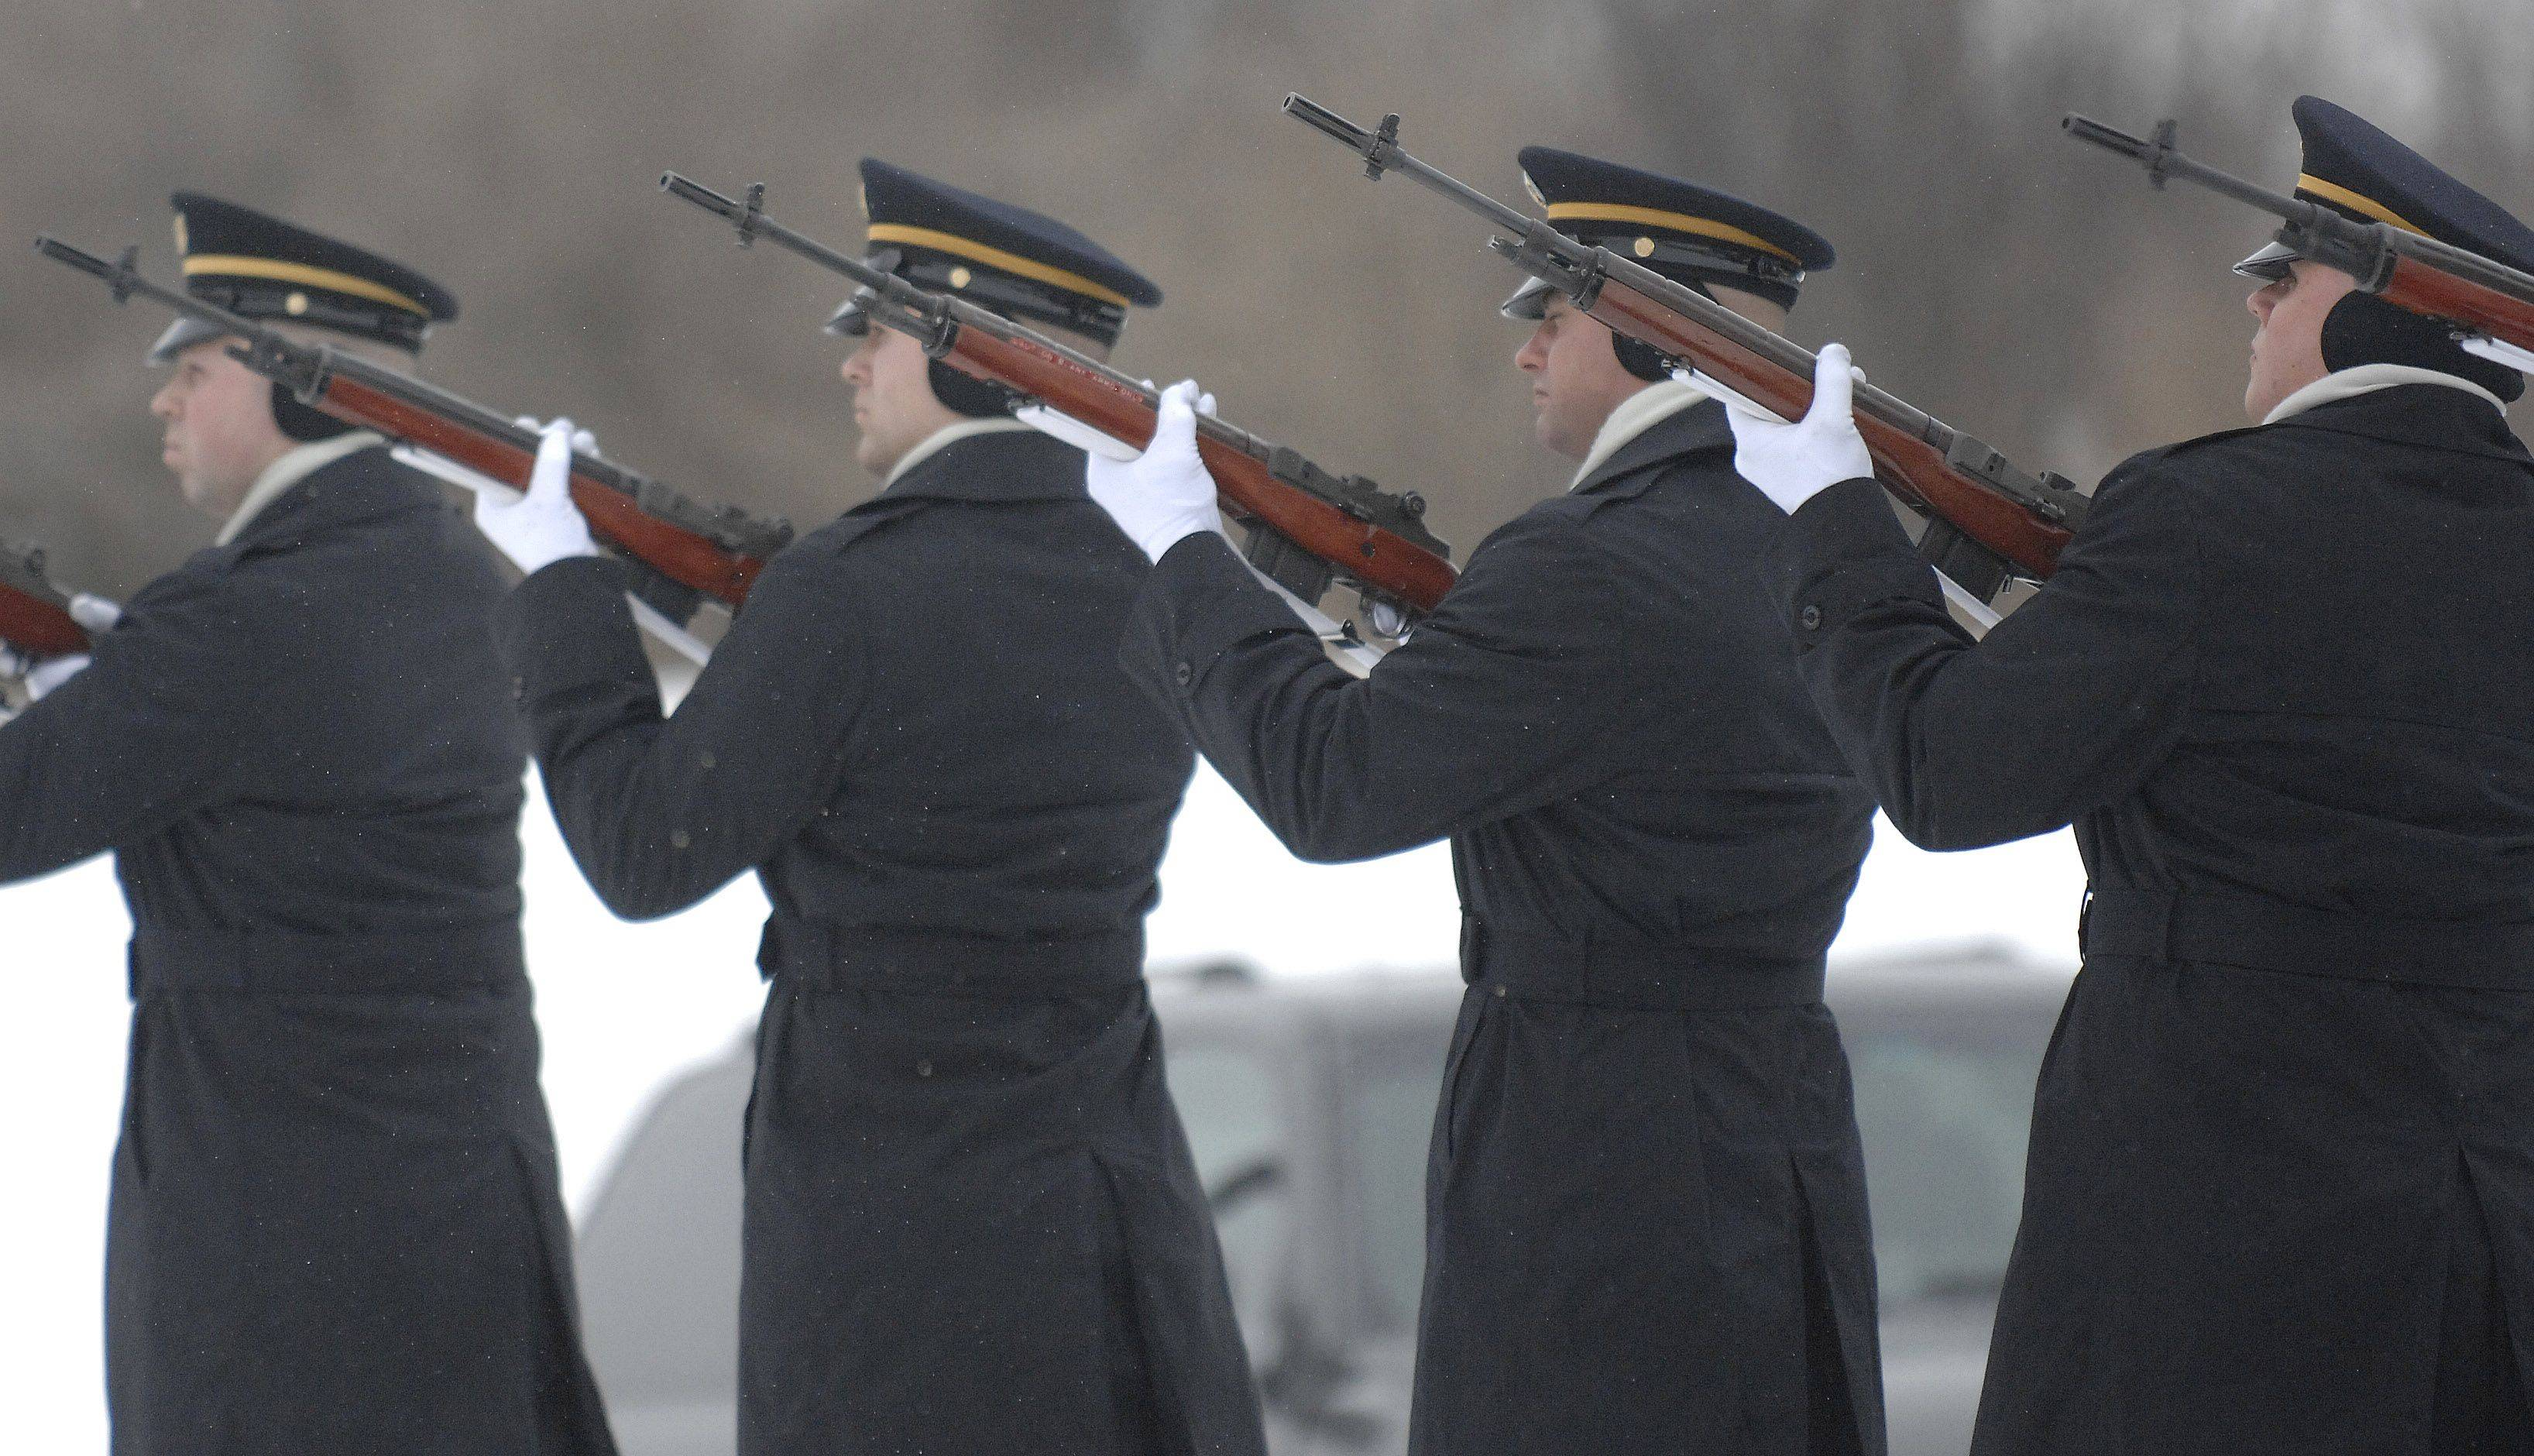 A 21-gun salute is fired for Spc. Christopher A. Patterson outside Immanuel Lutheran Church in Batavia on Saturday, January 21.